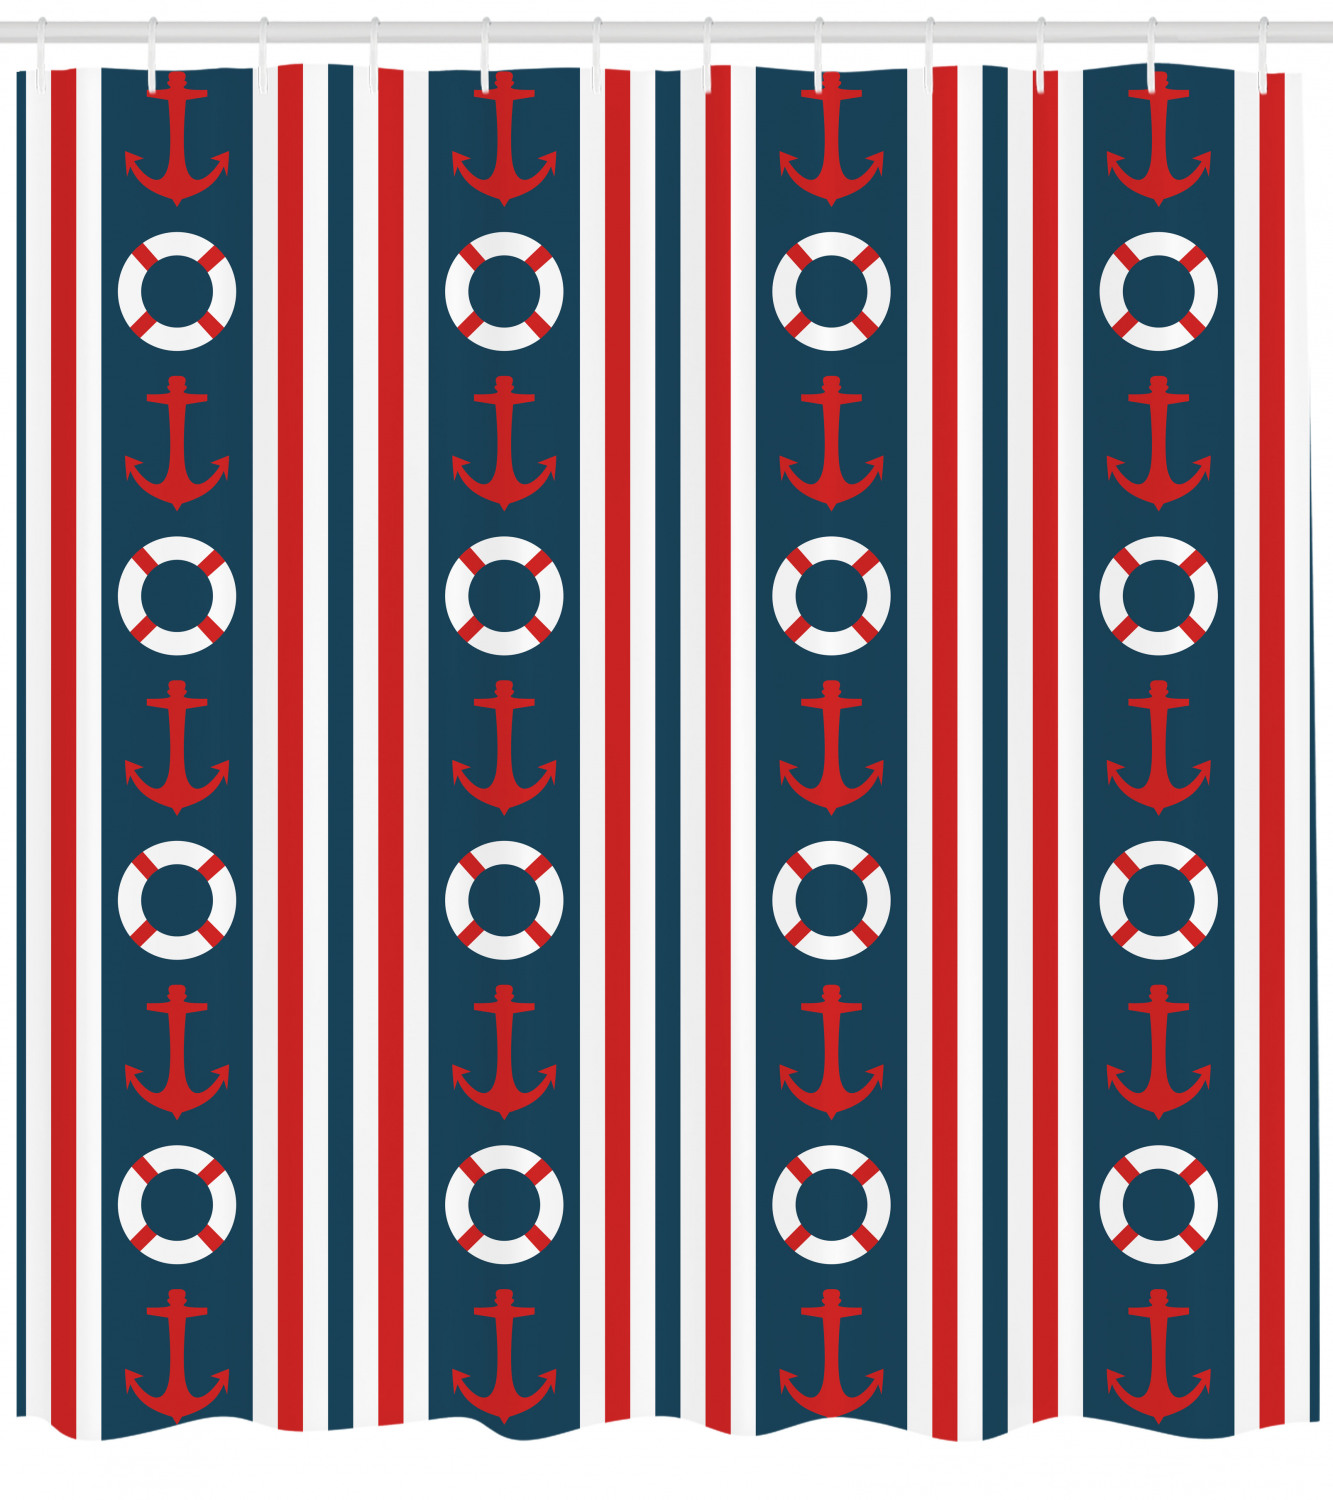 Nautical Shower Curtain Vertical Borders Stripes Maritime Theme Steering Wheel And Anchor Pattern Fabric Bathroom Set With Hooks 69w X 70l Inches